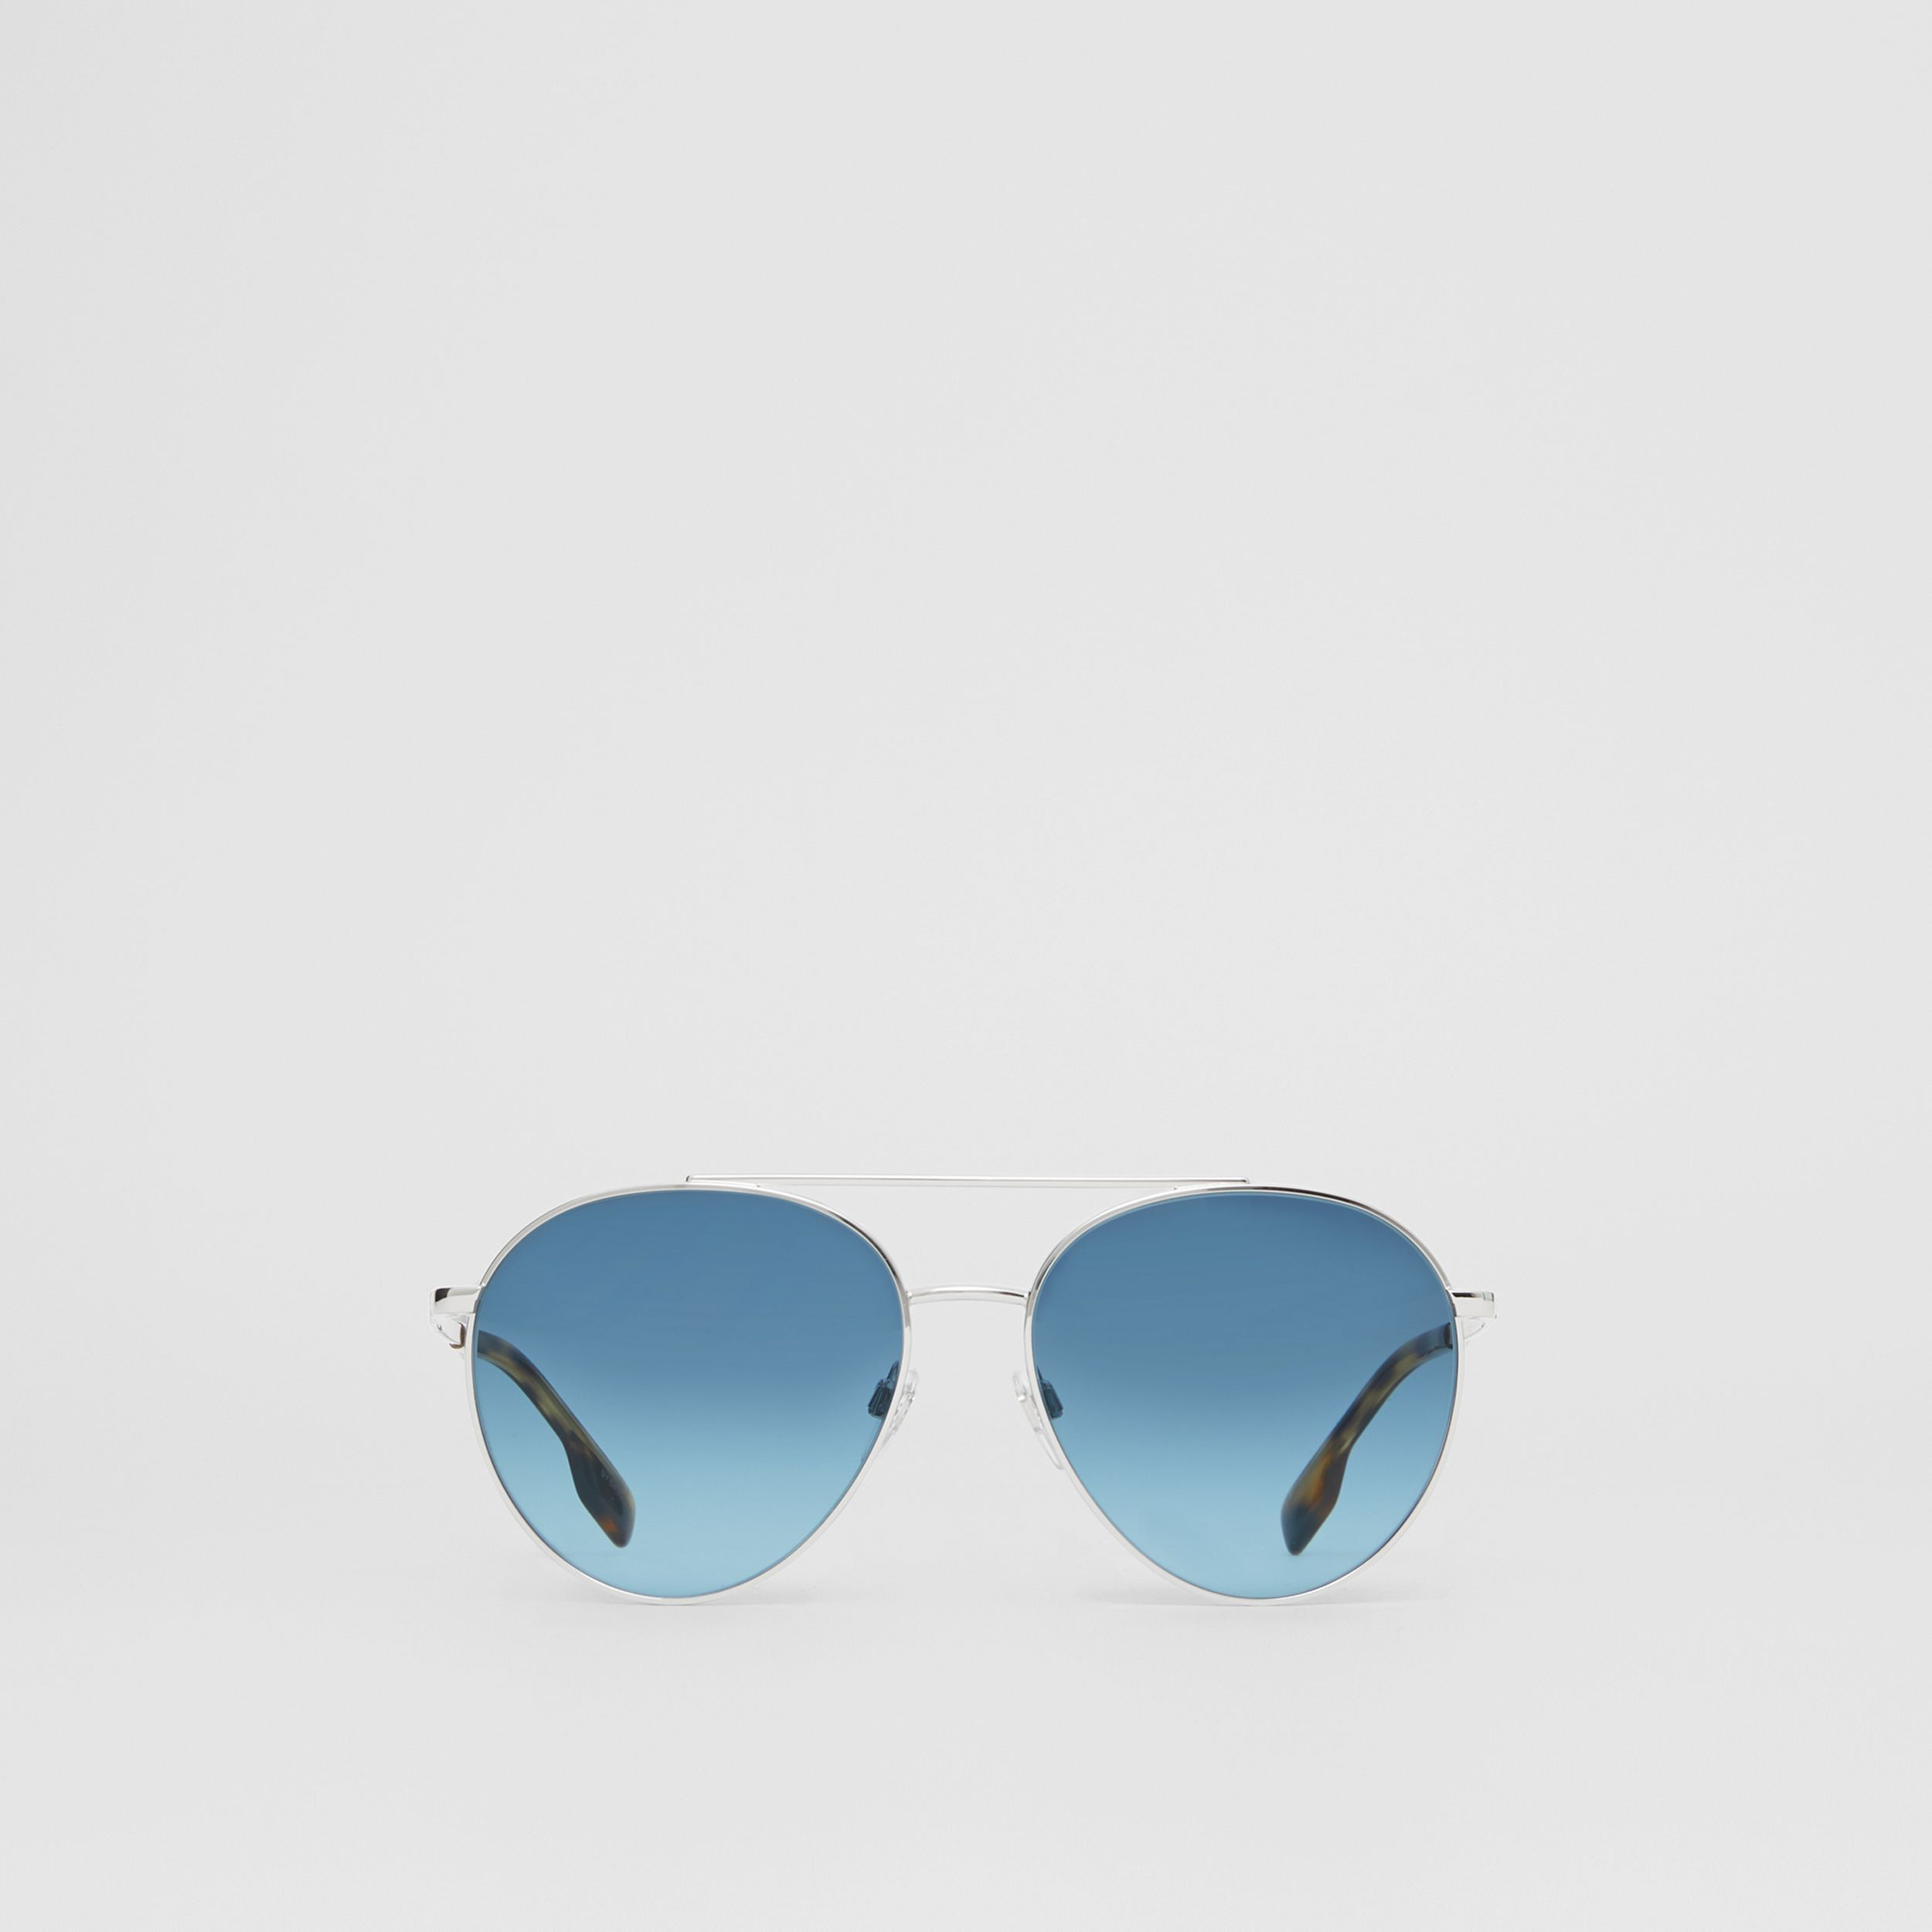 Pilot Sunglasses in Pale Blue | Burberry - 1